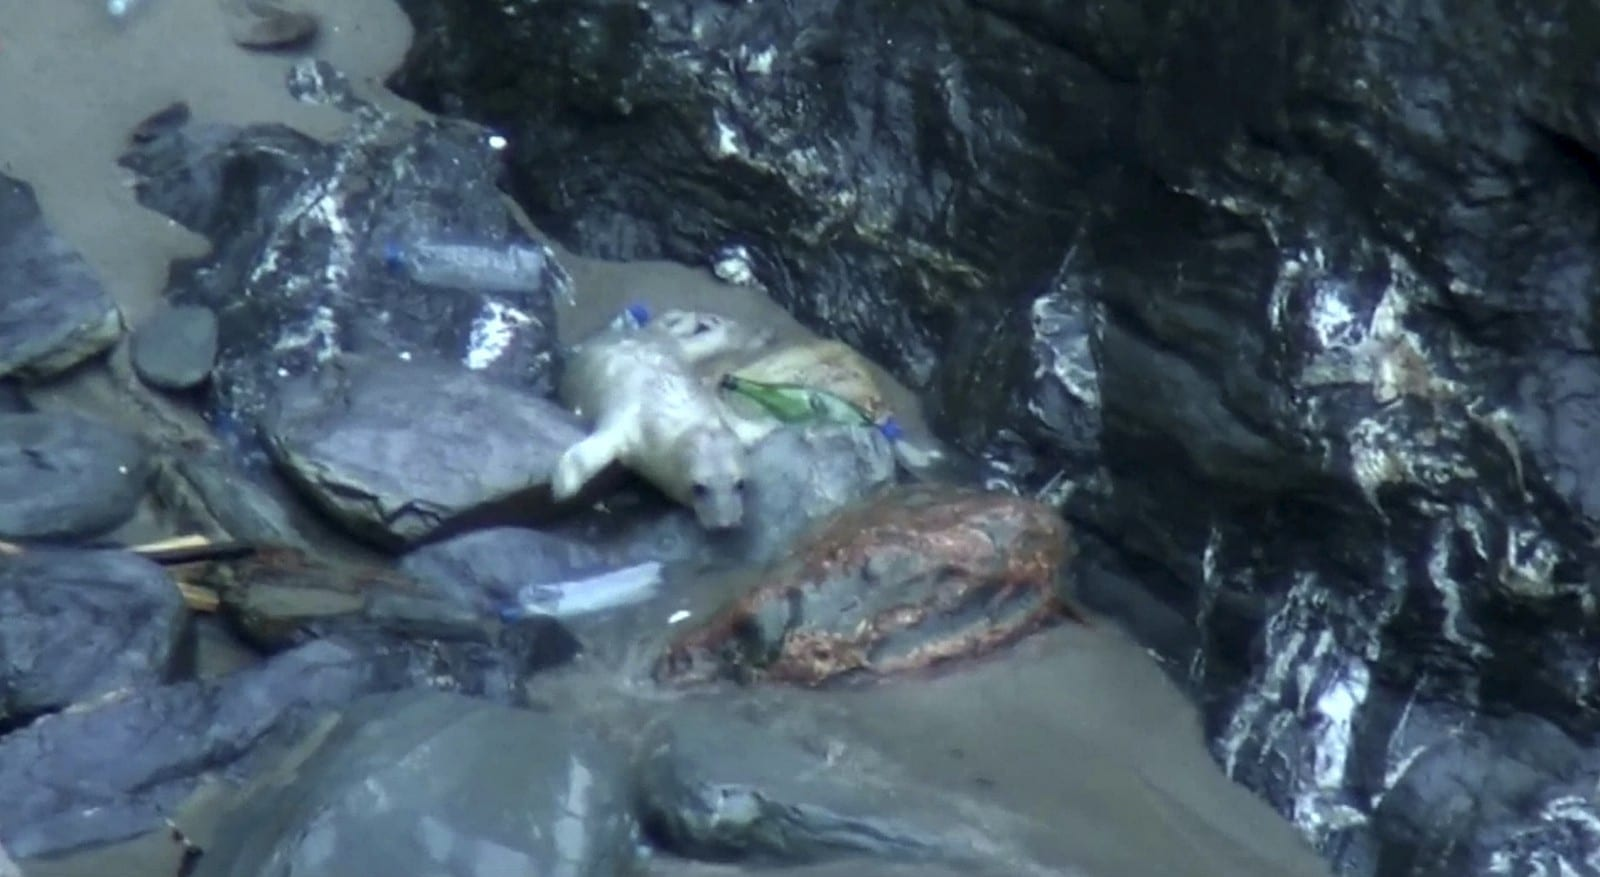 Shocking Video Shows Seal Stranded In Rock Pool And Struggling To Swim – Because It Is Surrounded By Plastic